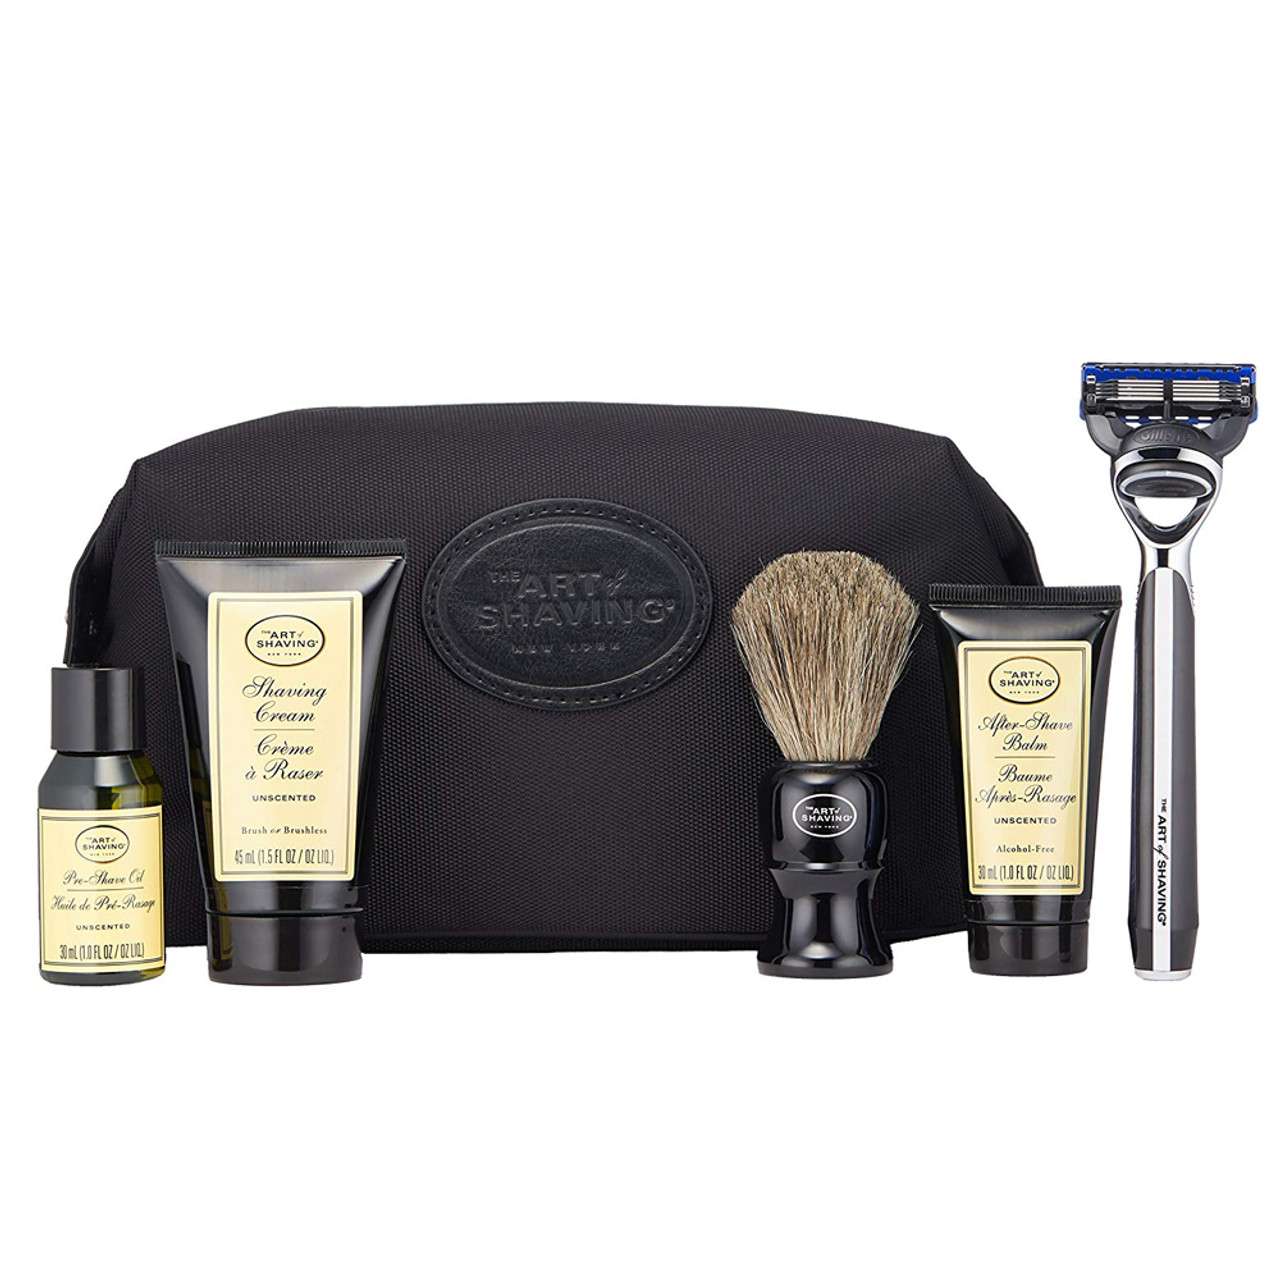 The Art of Shaving 5-Piece Travel Kit with Razor Unscented